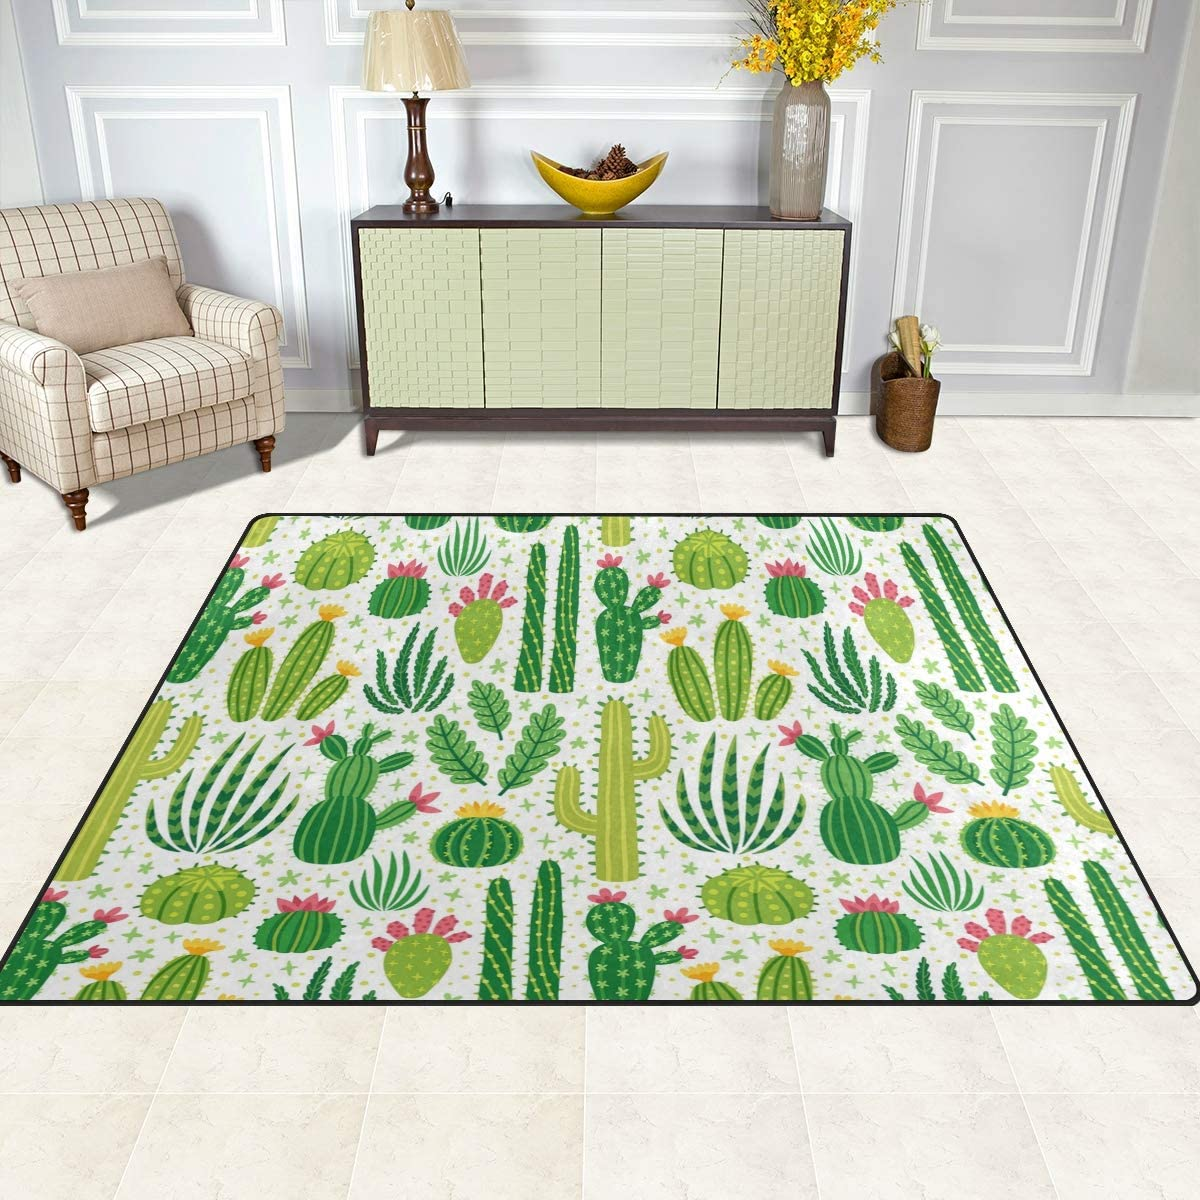 Naanle Cute Cartoon Non Slip Area Rug for Living Dinning Room Bedroom Kitchen Cactus Nursery Rug Floor Carpet Yoga Mat 1.7 x 2.6 ft 50 x 80 cm